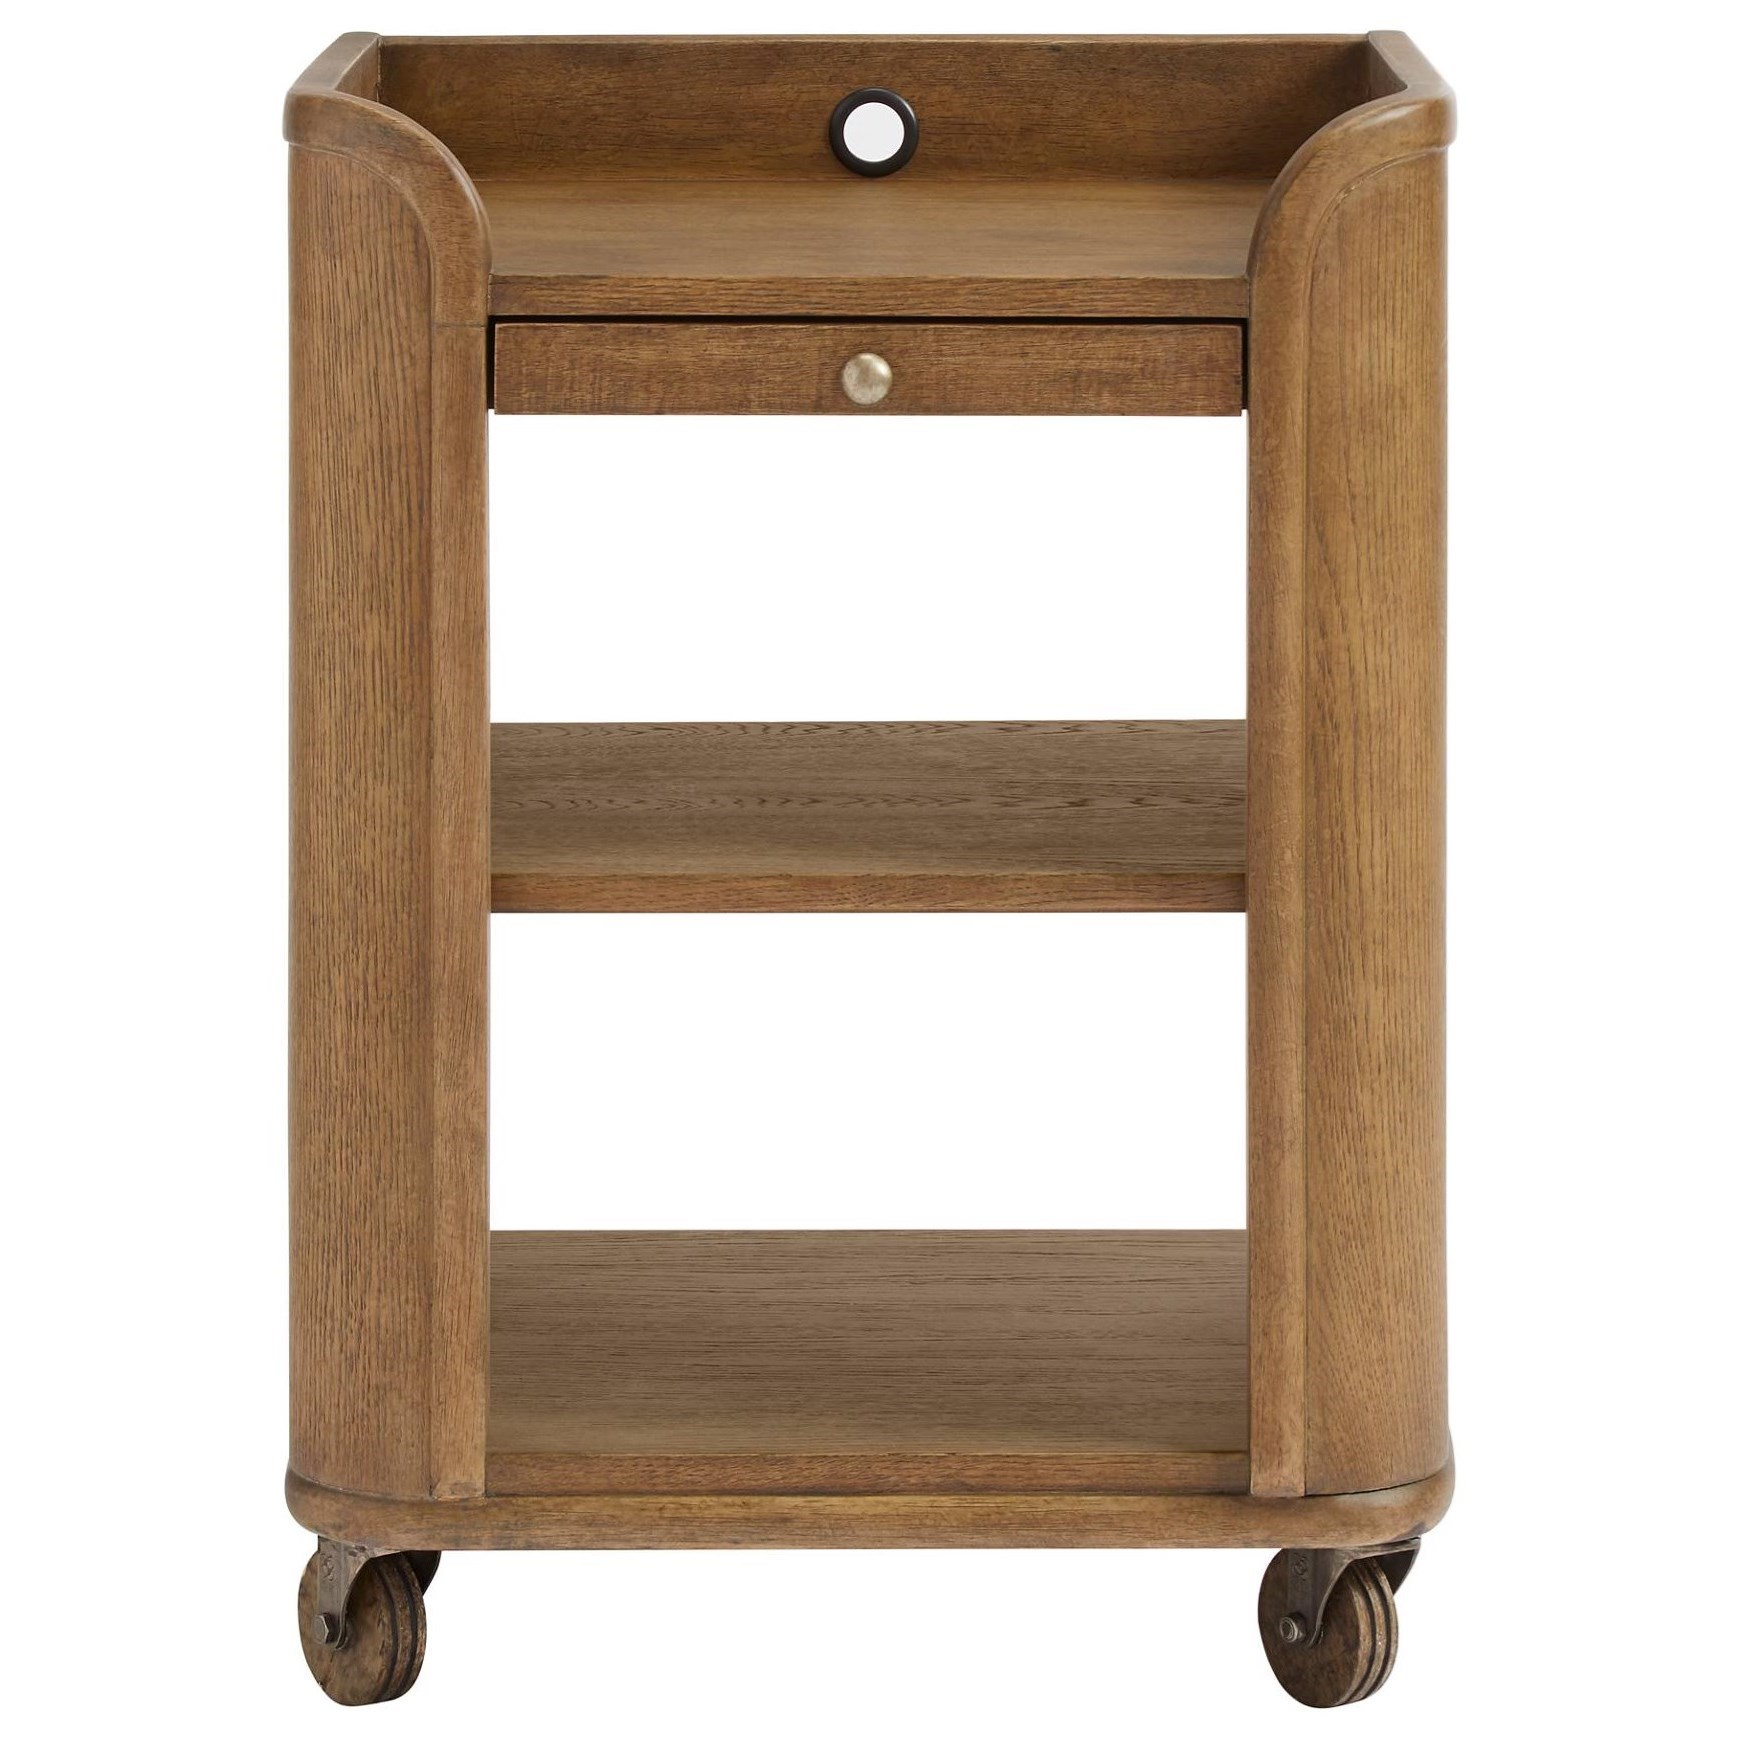 Driftwood Park Bedside Storage Table by Stone & Leigh Furniture at Alison Craig Home Furnishings